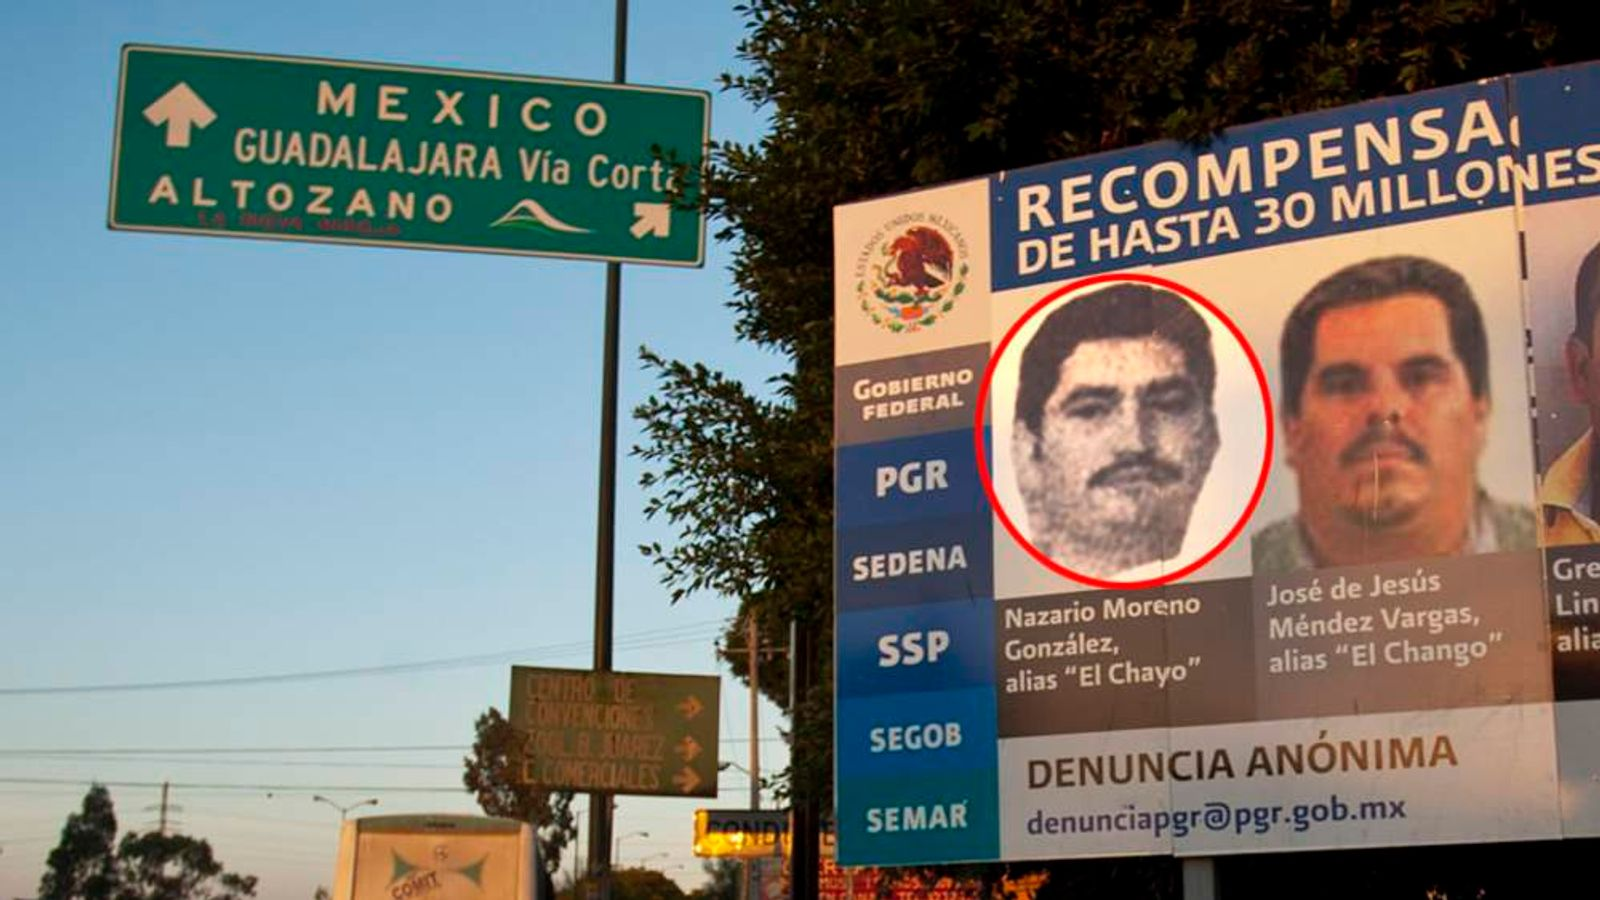 The Michoacan Family Confronts Federal Police